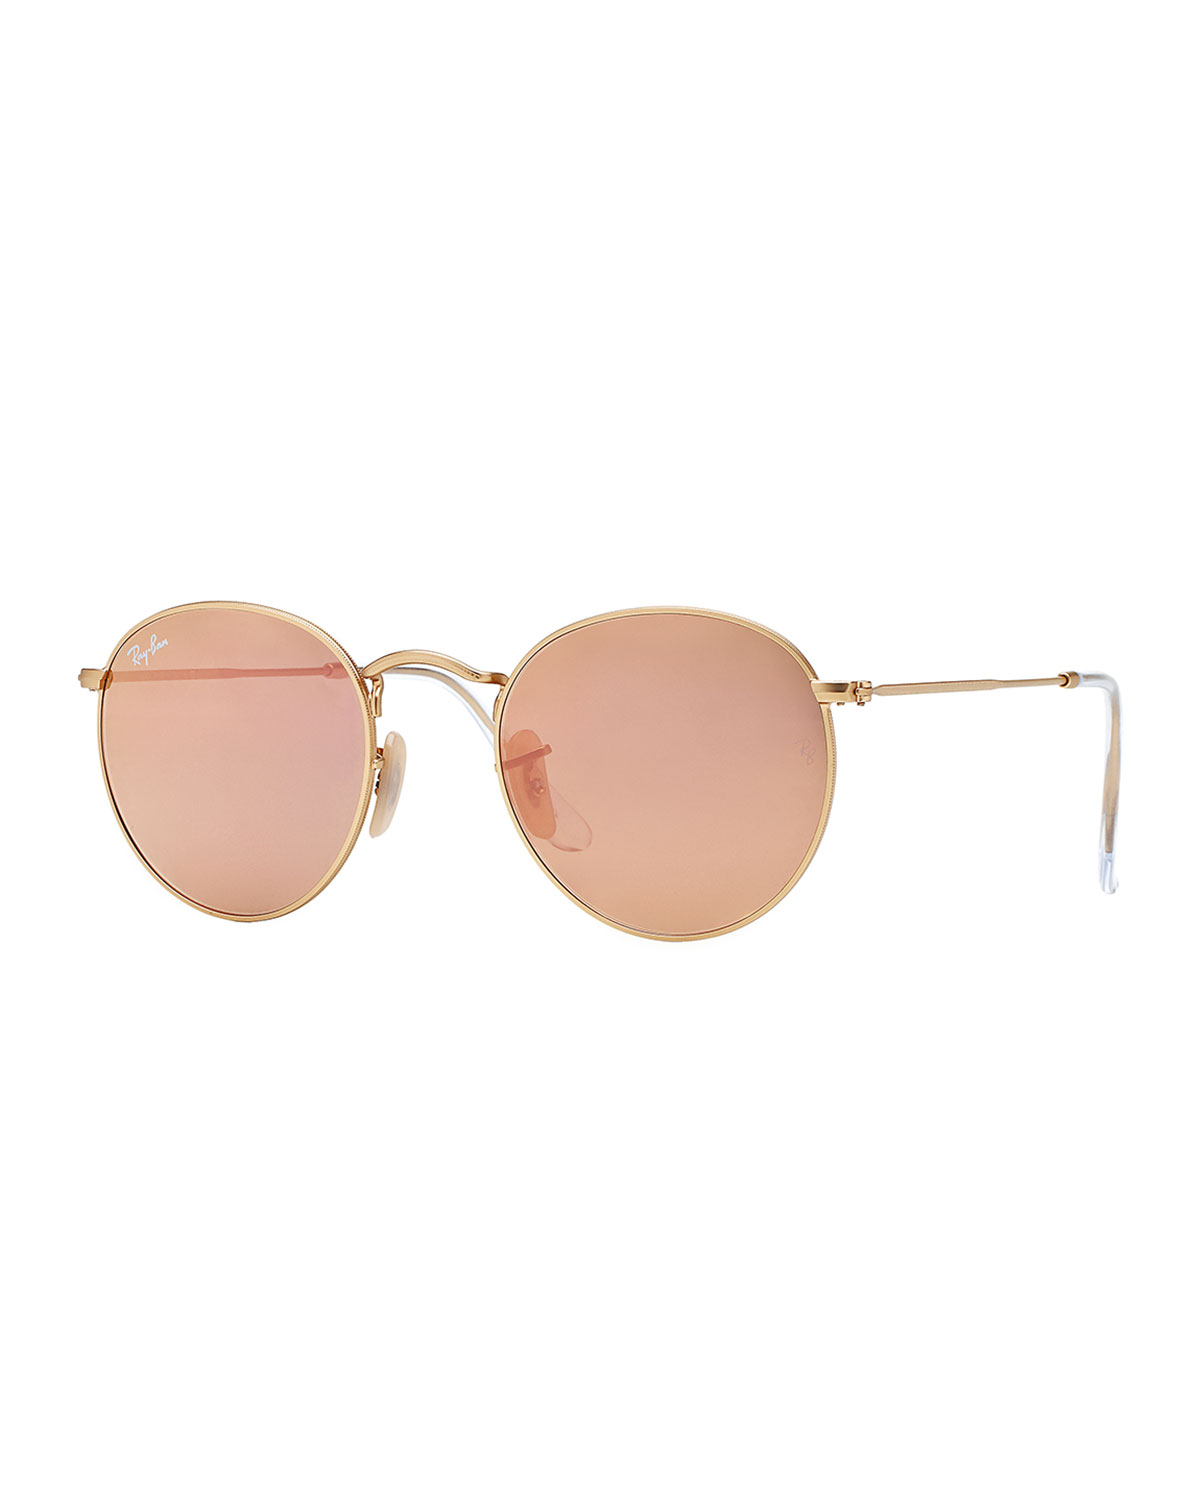 Ray Ban Golden Frame Glasses : Ray-ban Round Metal-frame Sunglasses With Pink Lens in ...